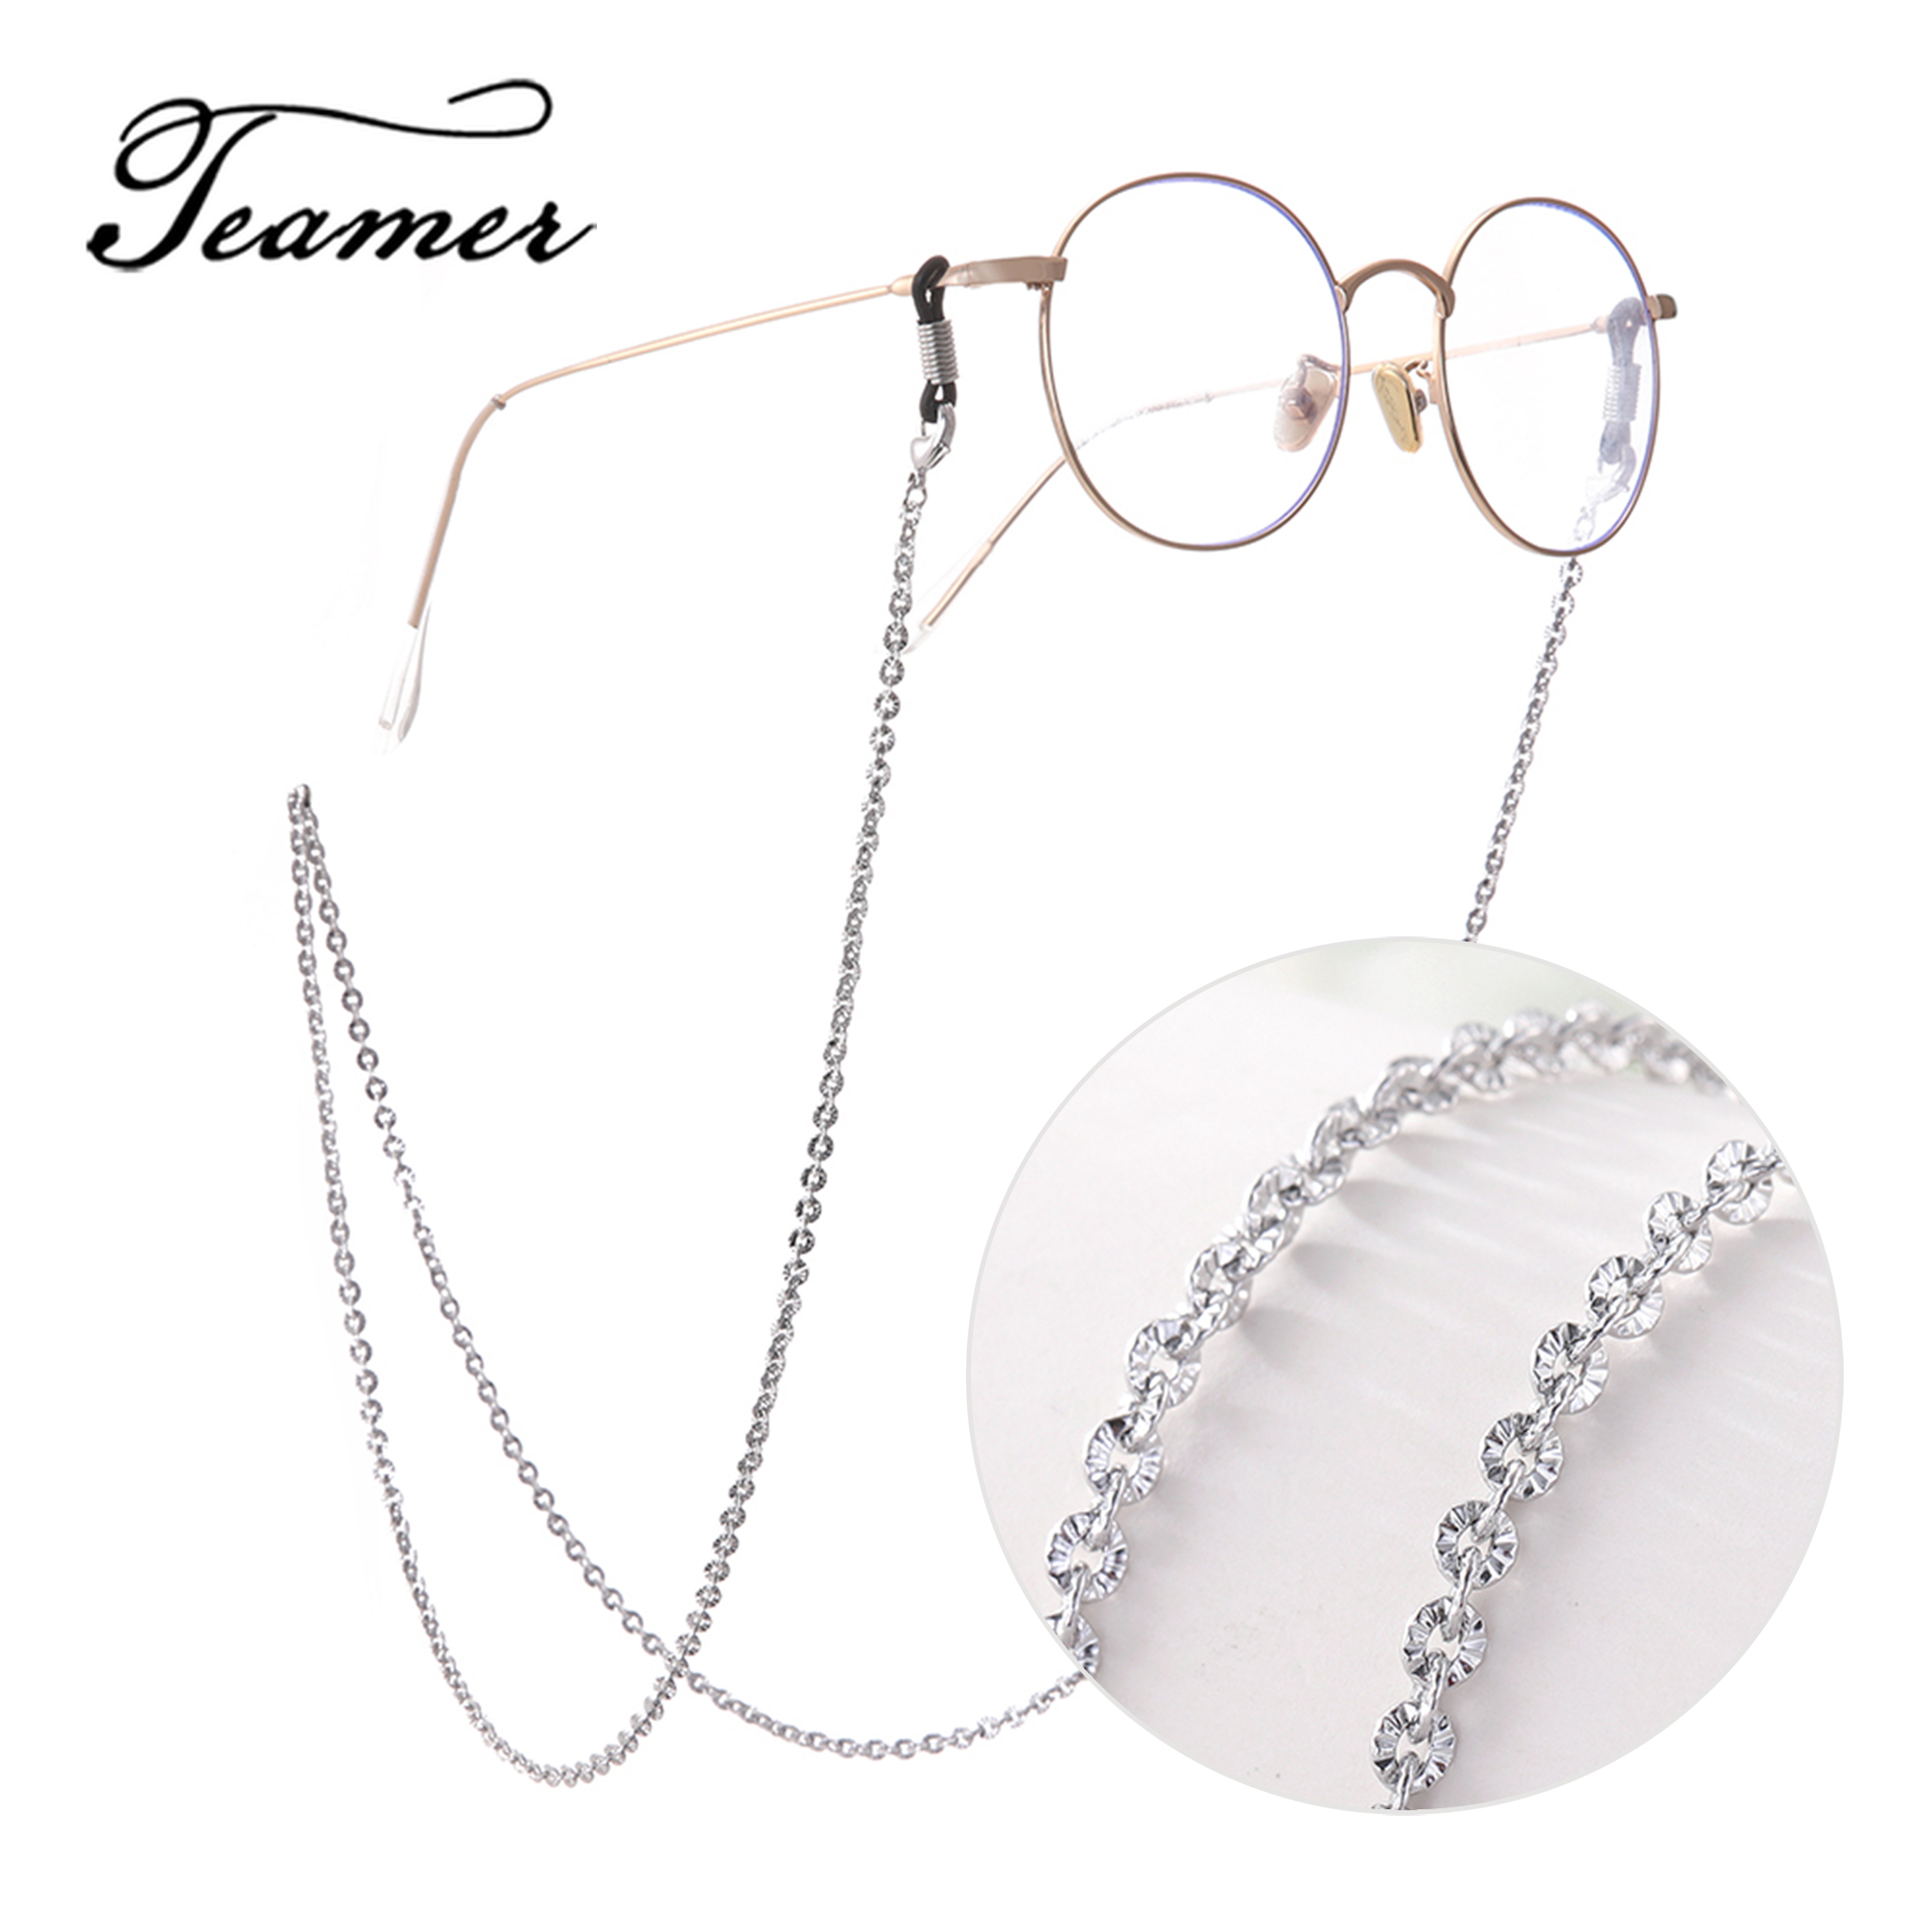 Teamer 78 Fashion Metal Glasses Chain For Women   Sunglasses Chain Strap Neck Holder Lanyard Eye Glasses Accessories